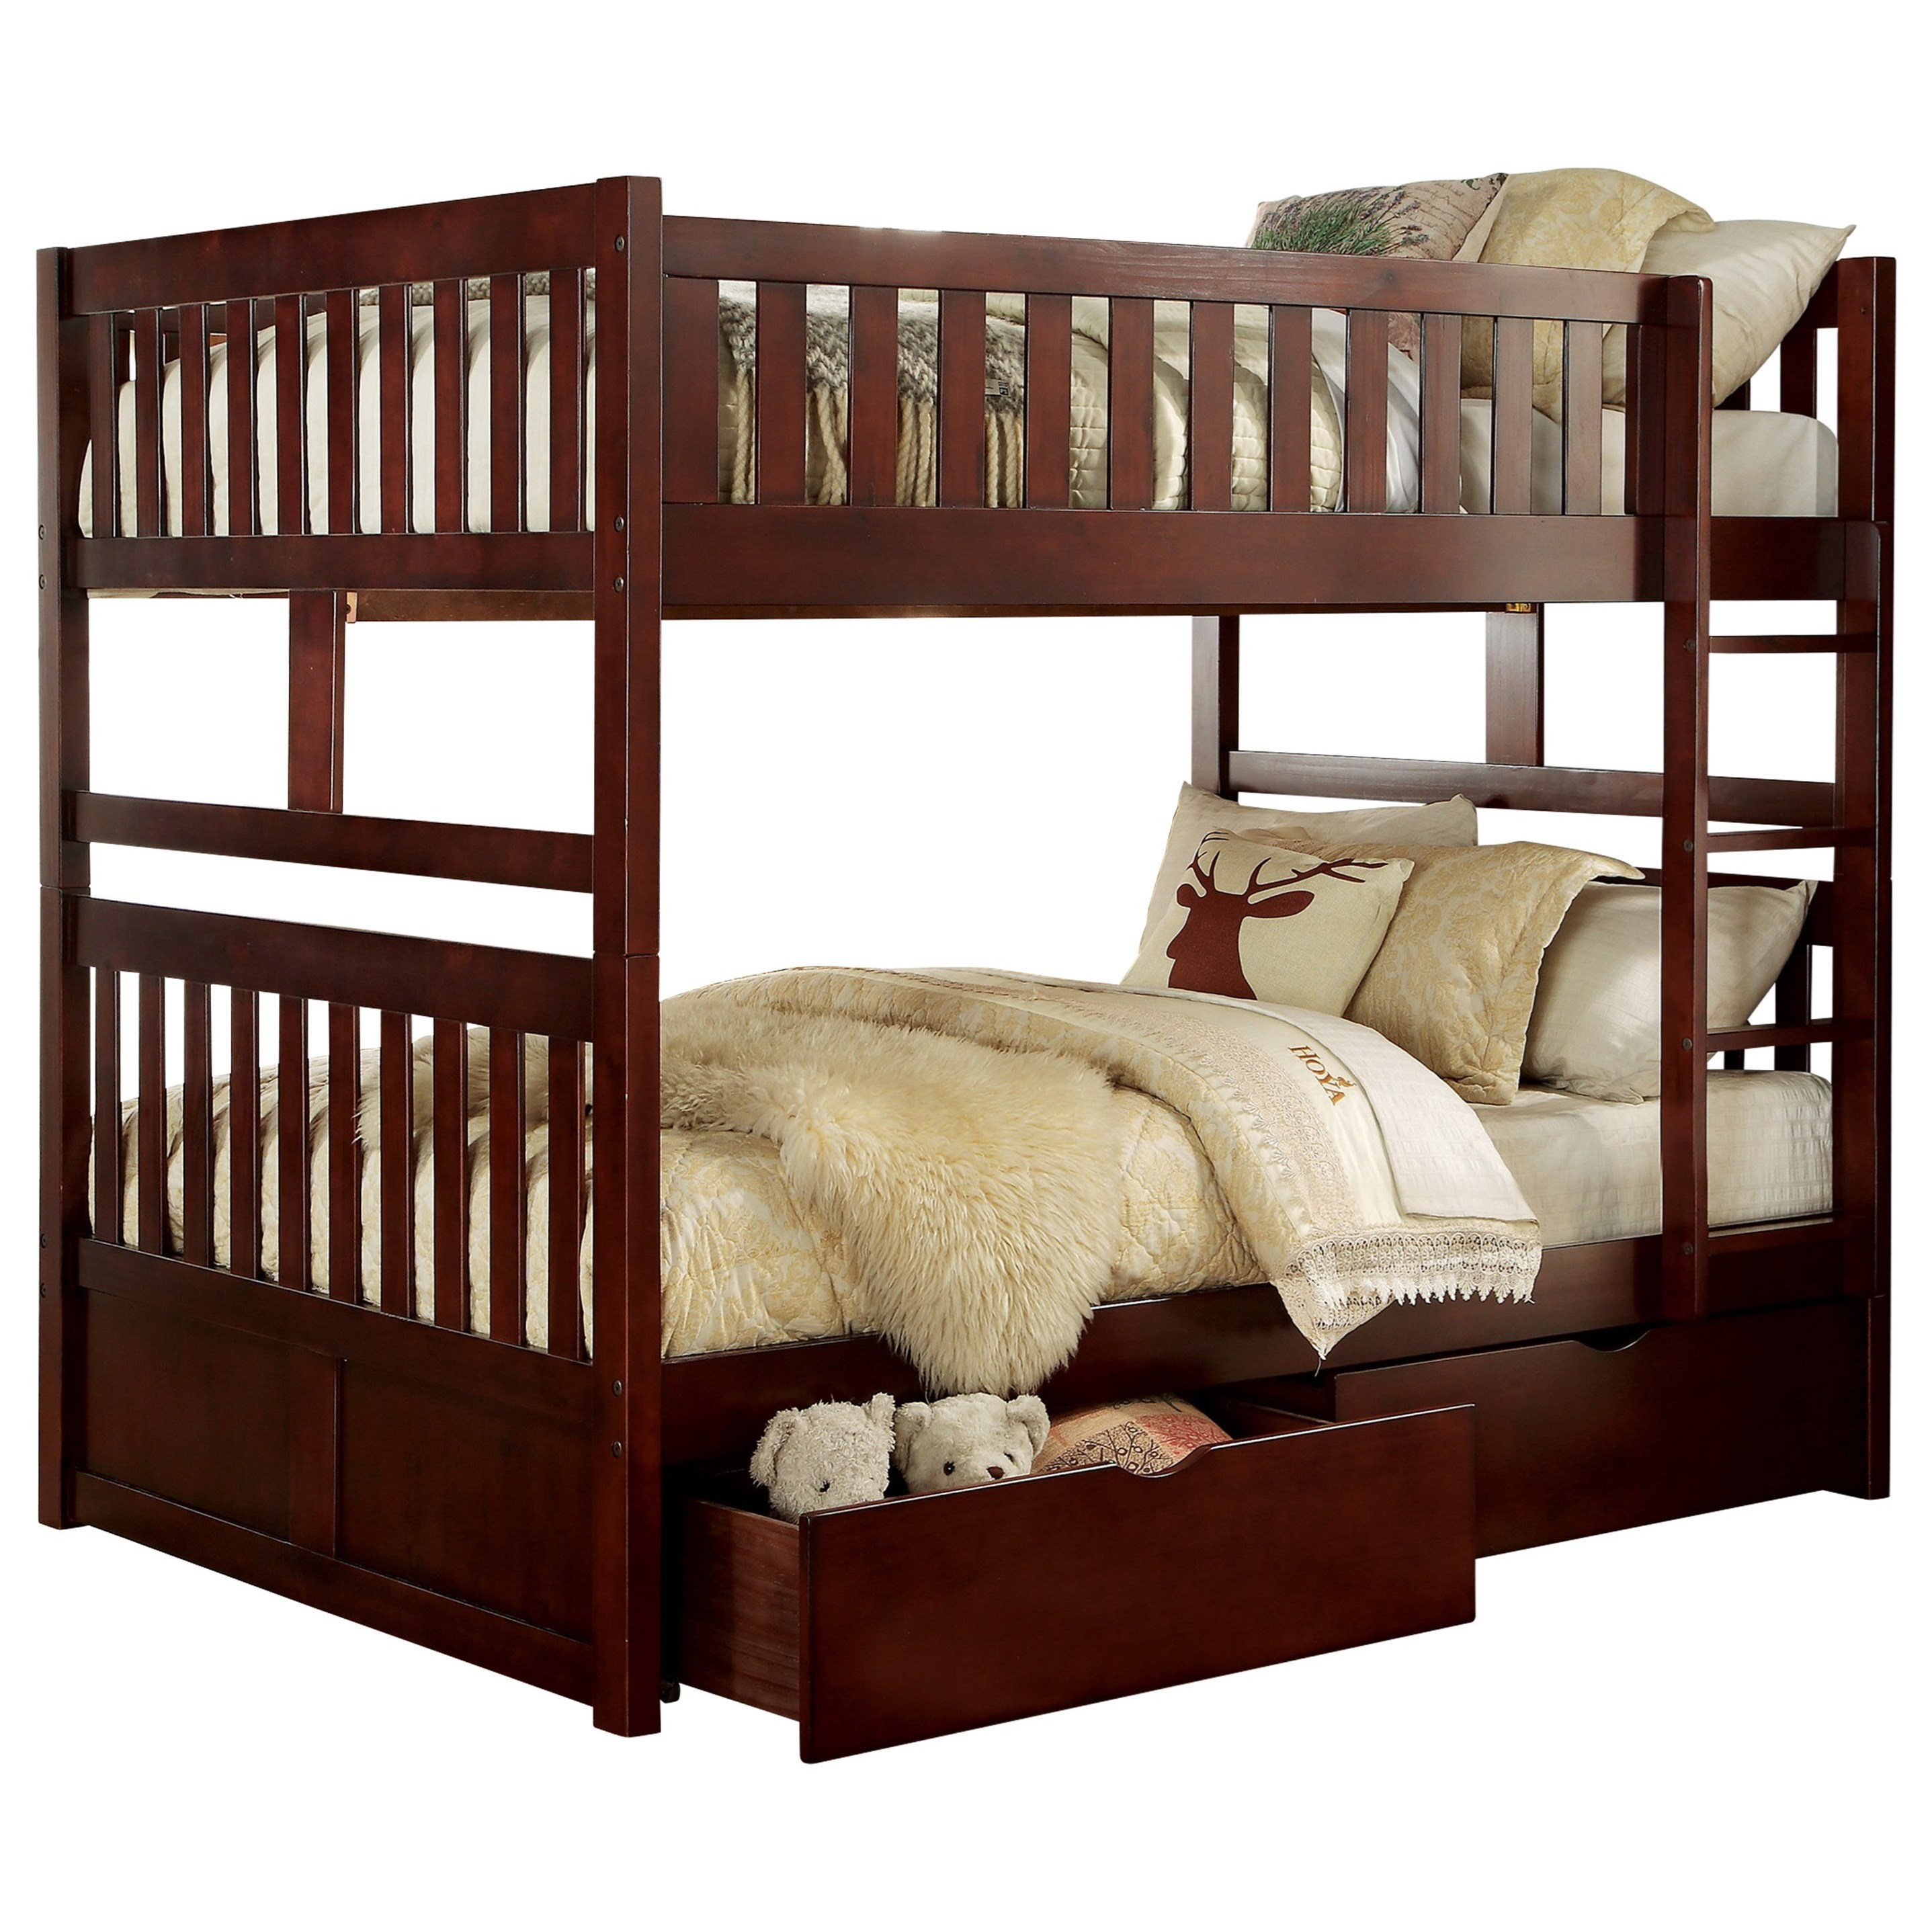 Cherry Full Over Full Storage Bunk Bed by Home Style at Walker's Furniture